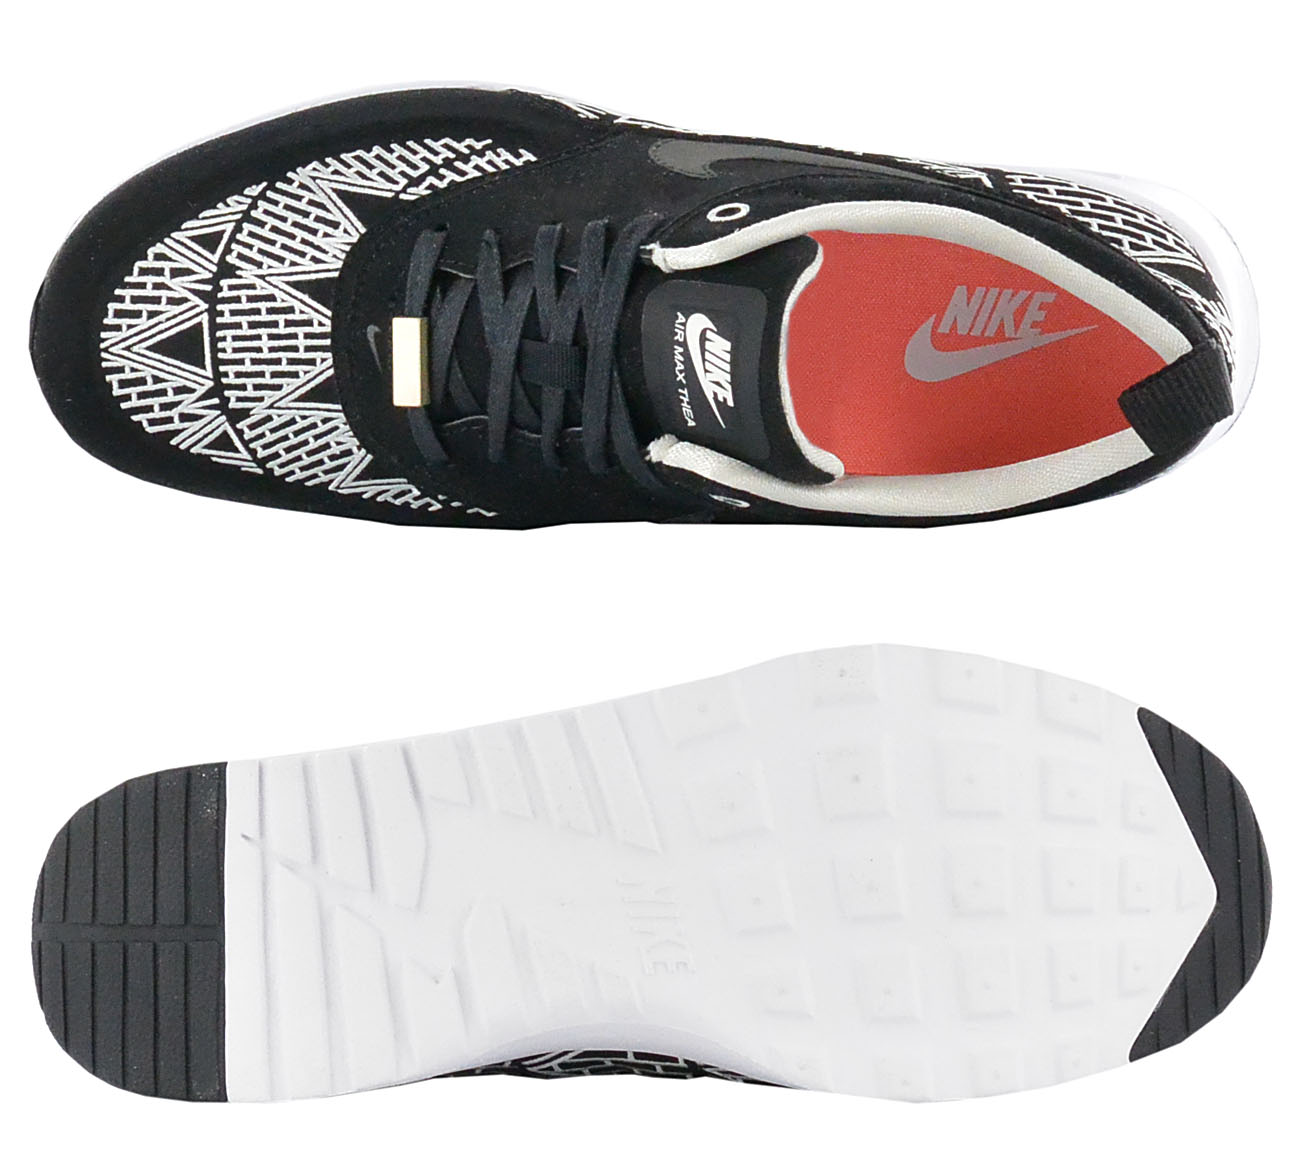 Details about Nike air max Thea Qs